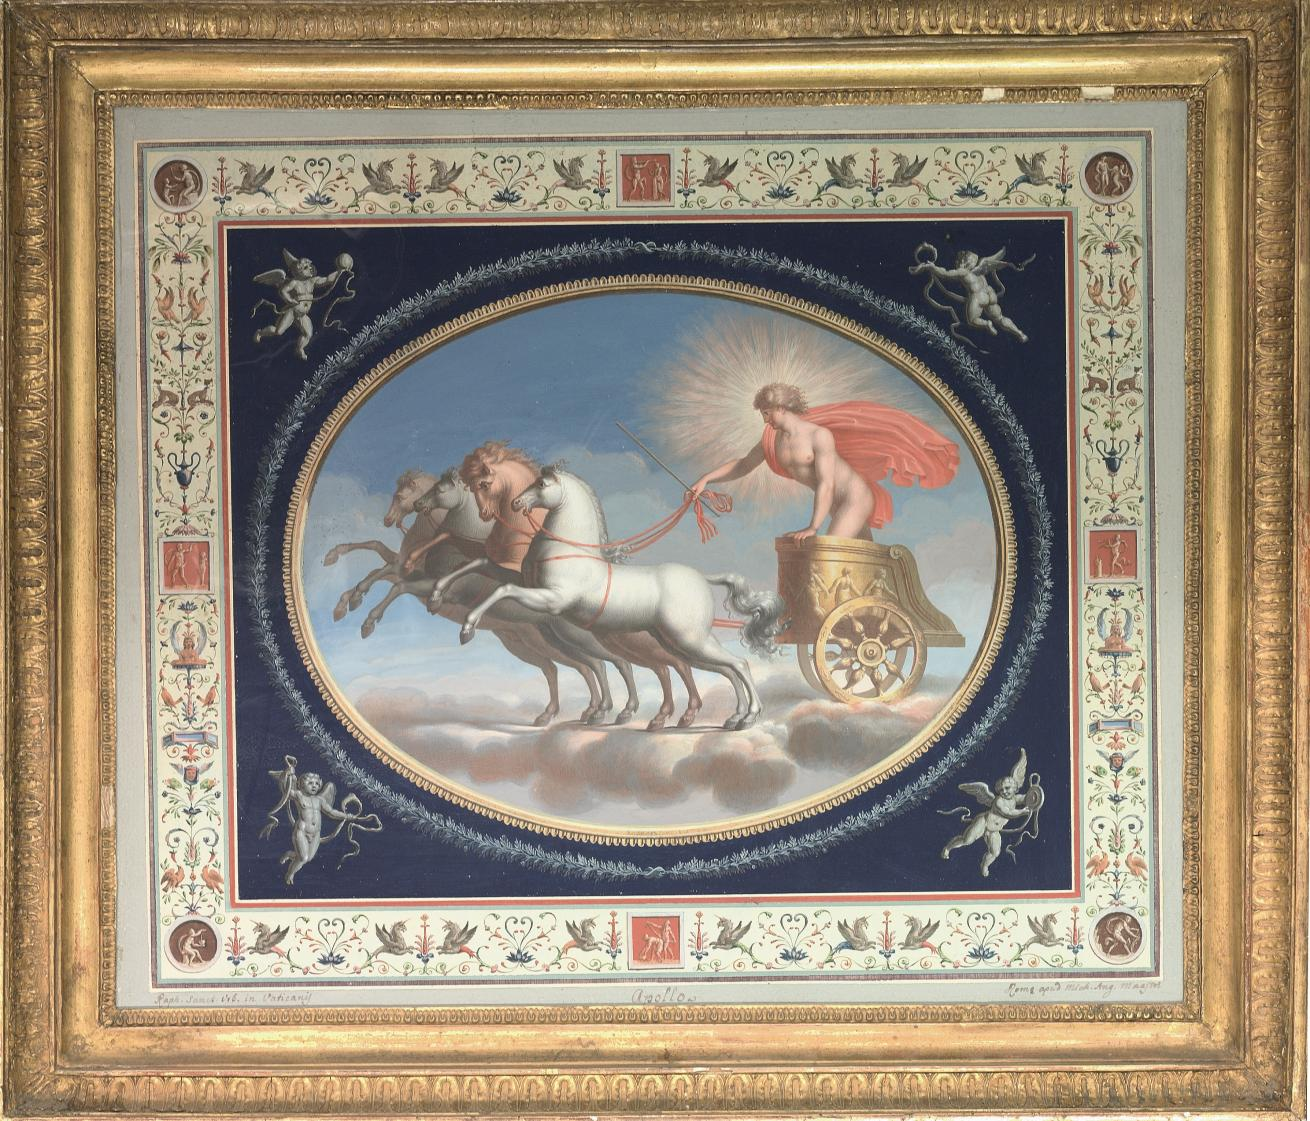 A set of four decorative panels showing Apollo, Mars, Venus and Mercury in chariots, surrounded by Pompeian grotesques